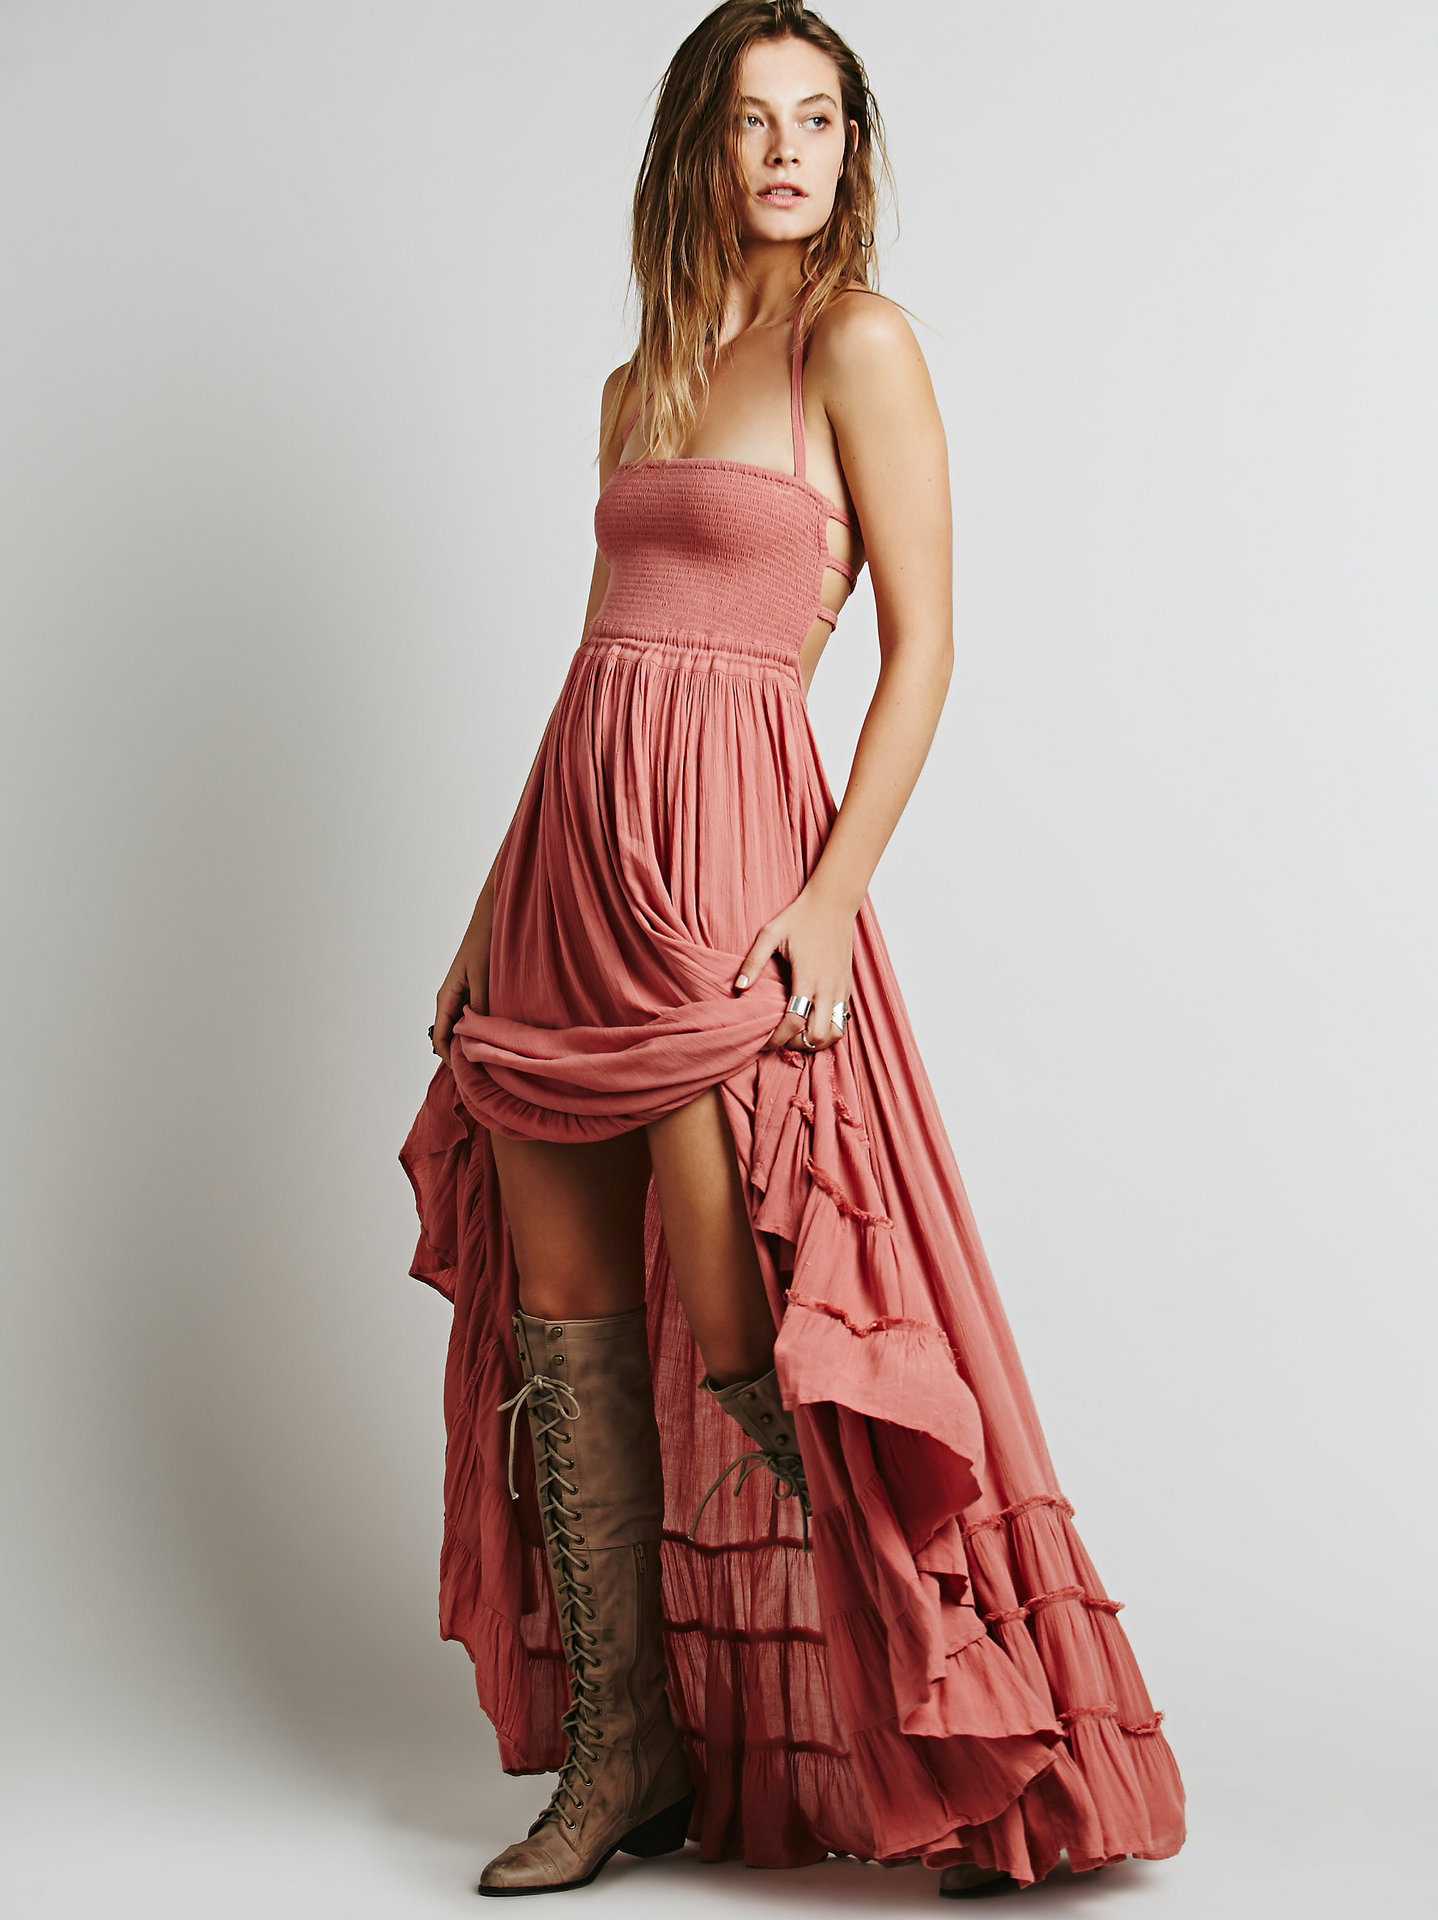 Fashion style Chic bohemian hippie styles by free people for woman